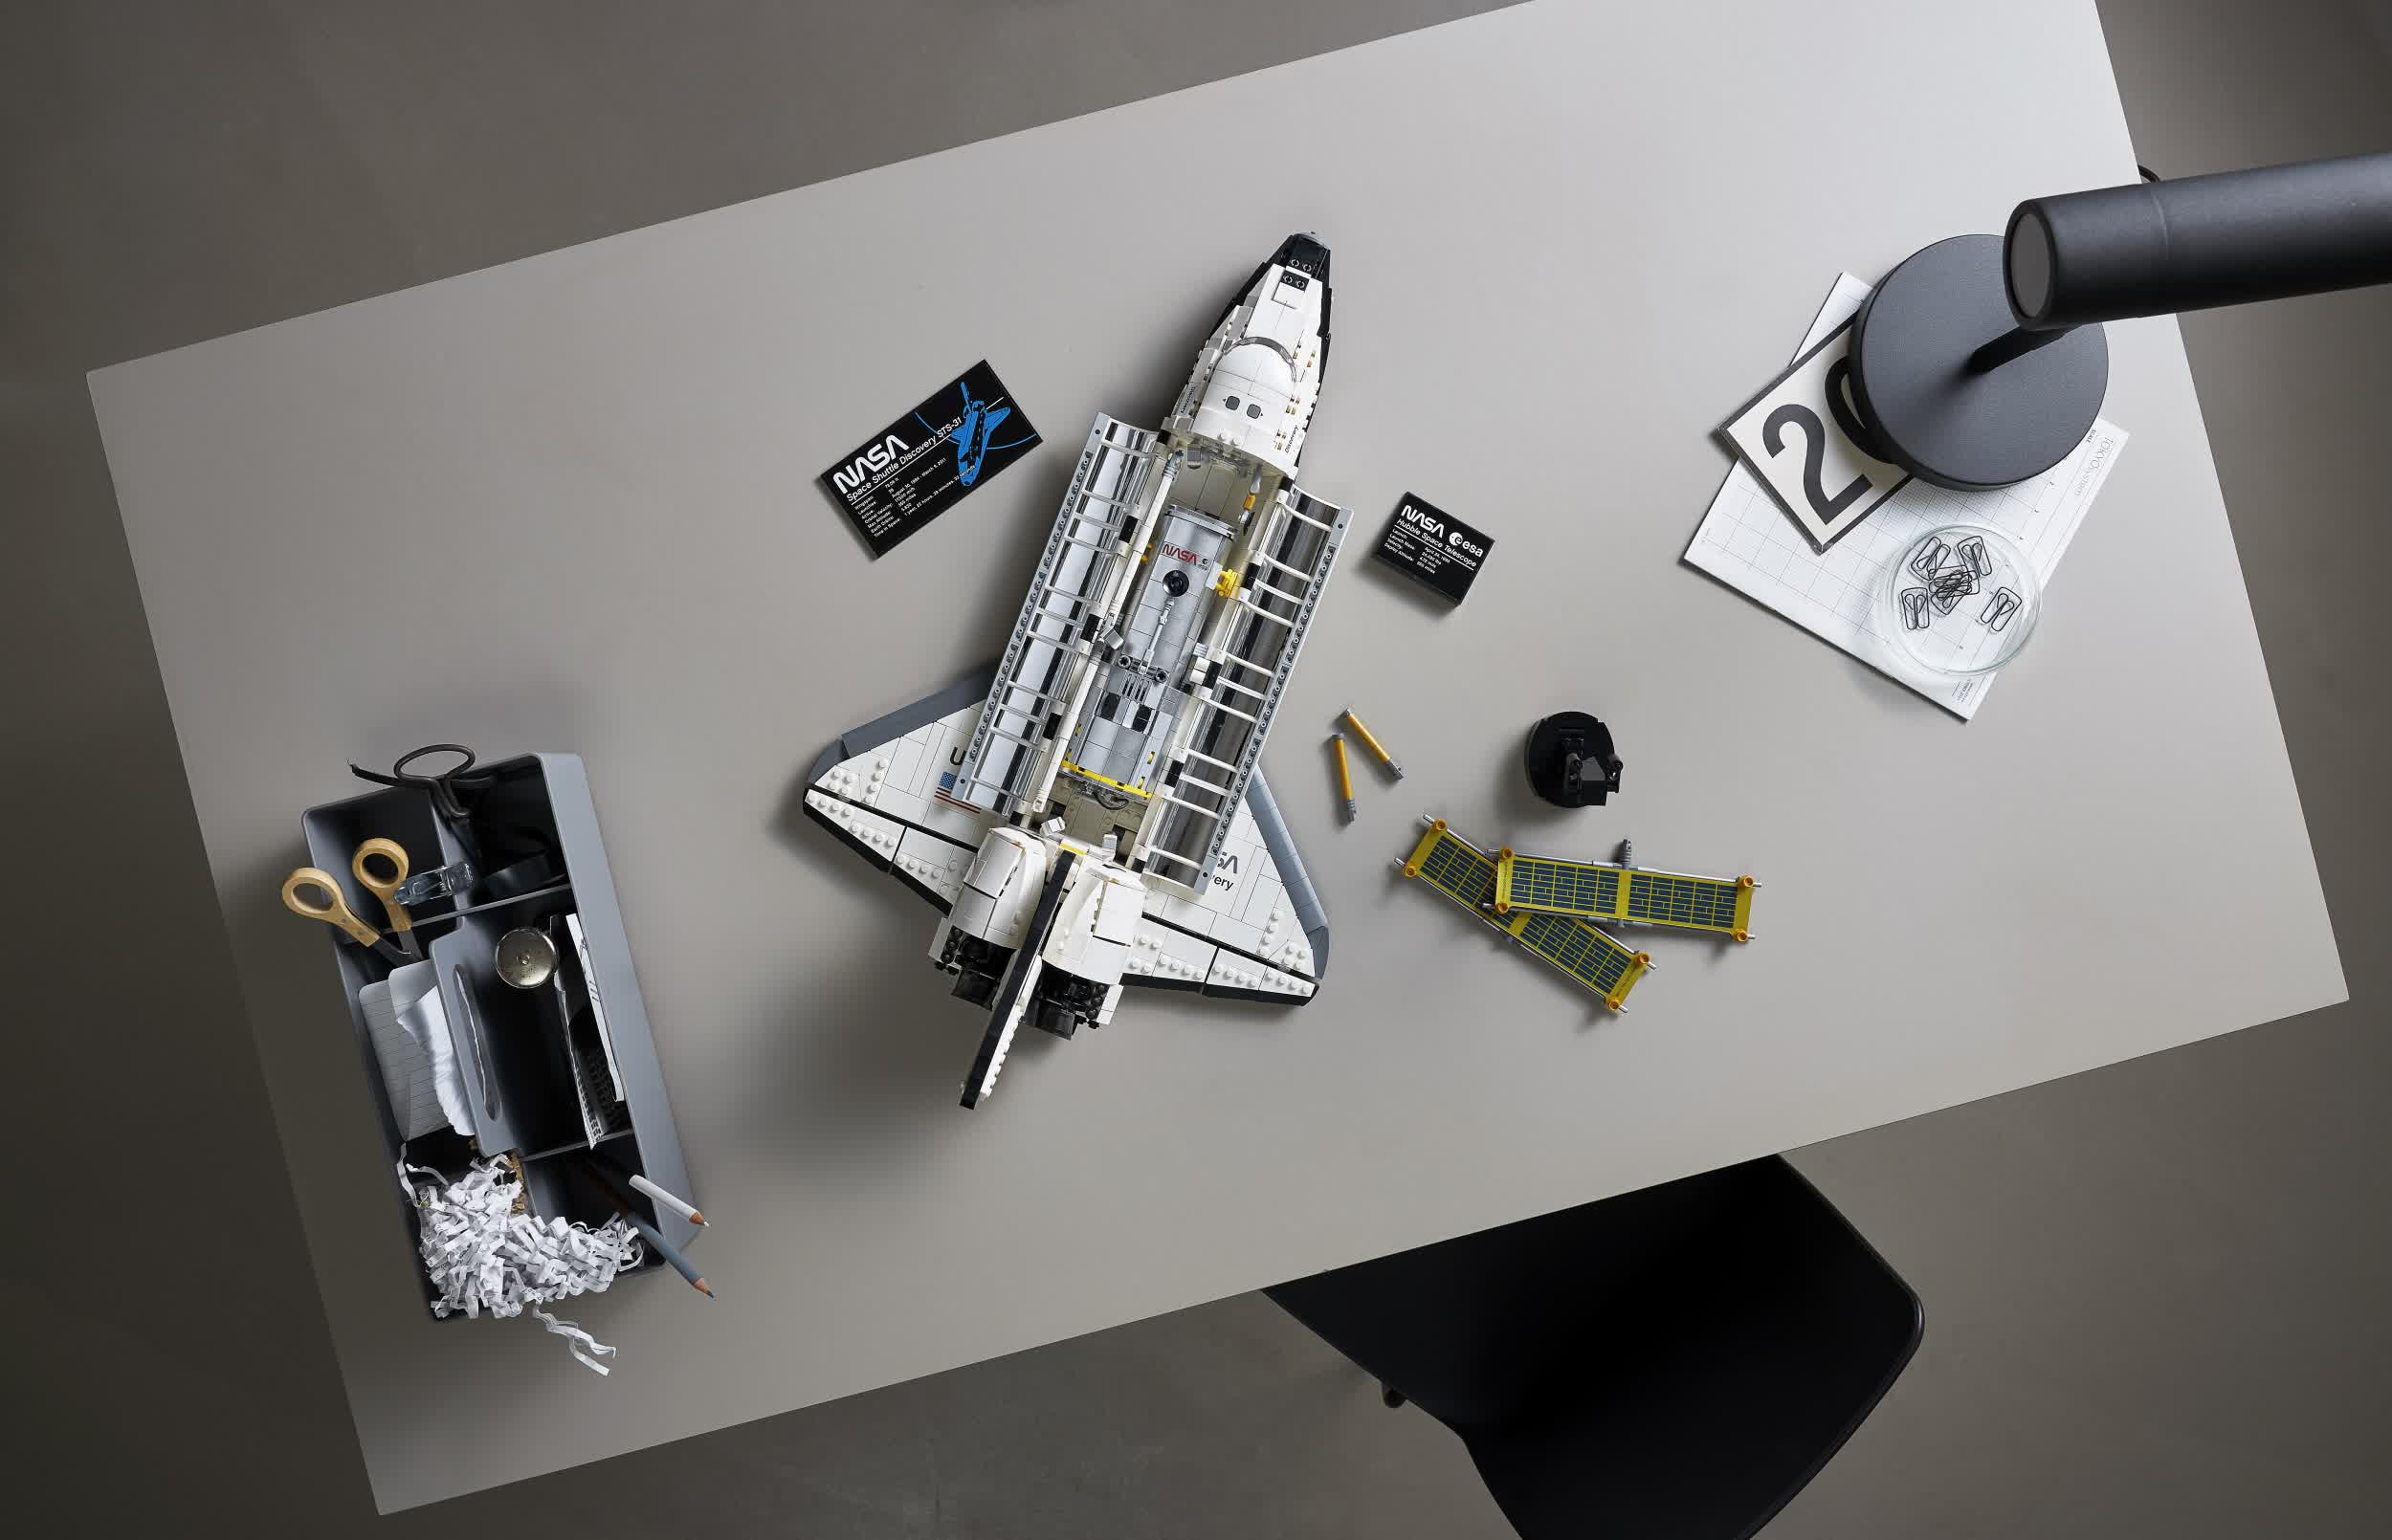 Lego Space Shuttle Discovery with Hubble Telescope set drops on April 1 for $199.99